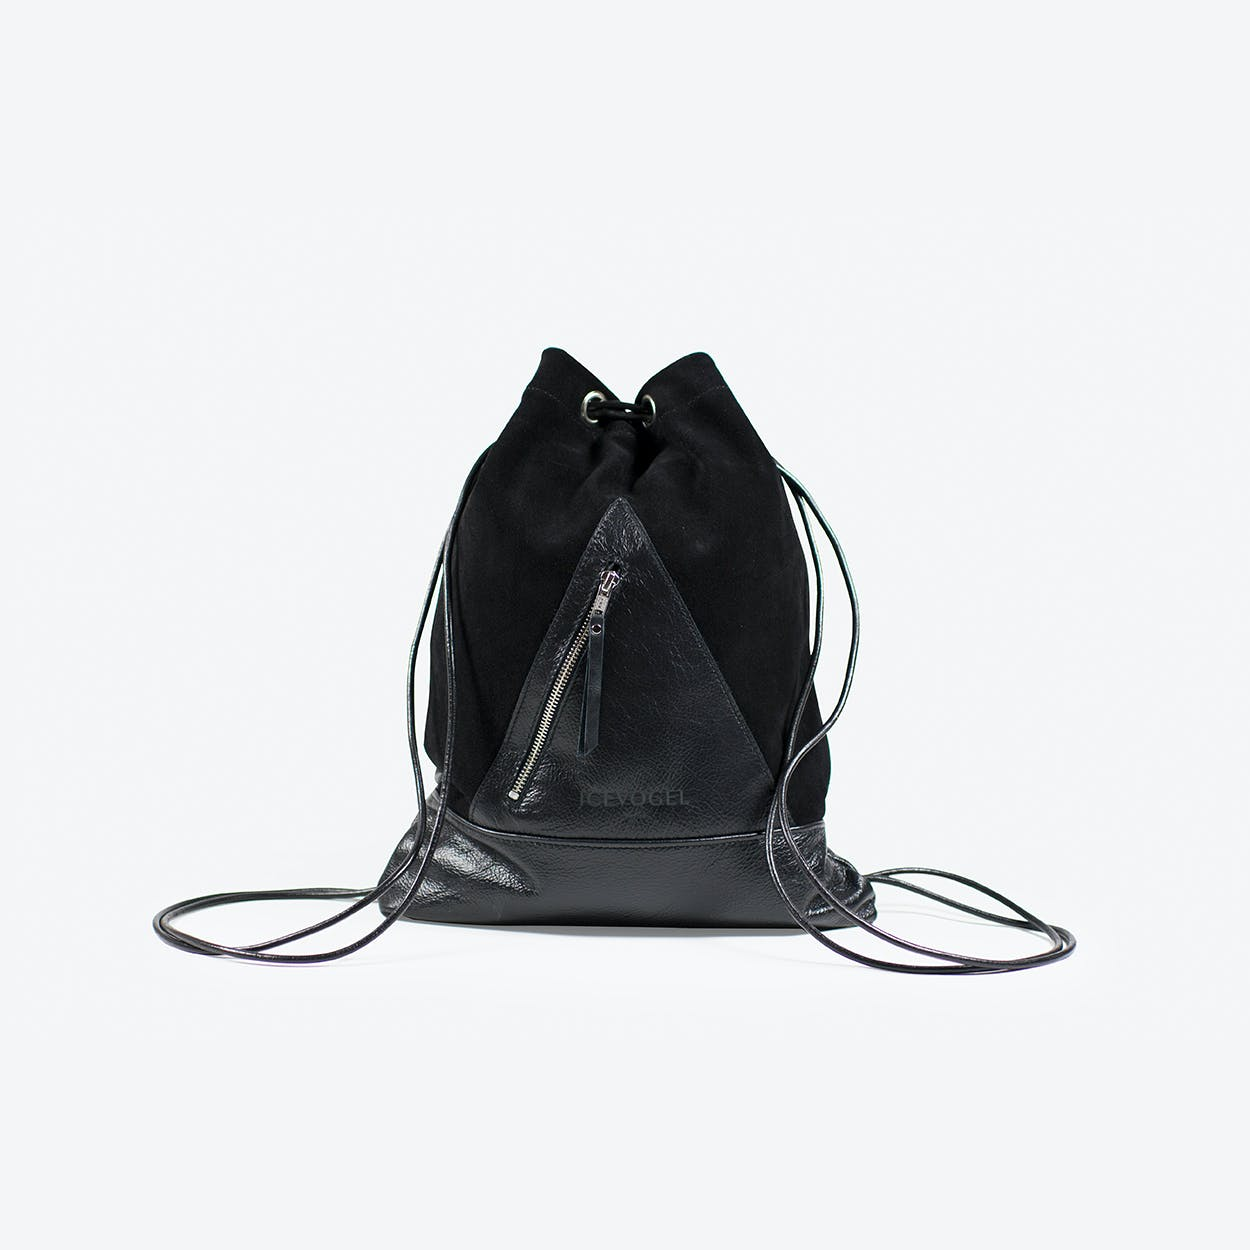 Backpack Saatkrähe in Black Cow Leather, Suede and Silver Fittings